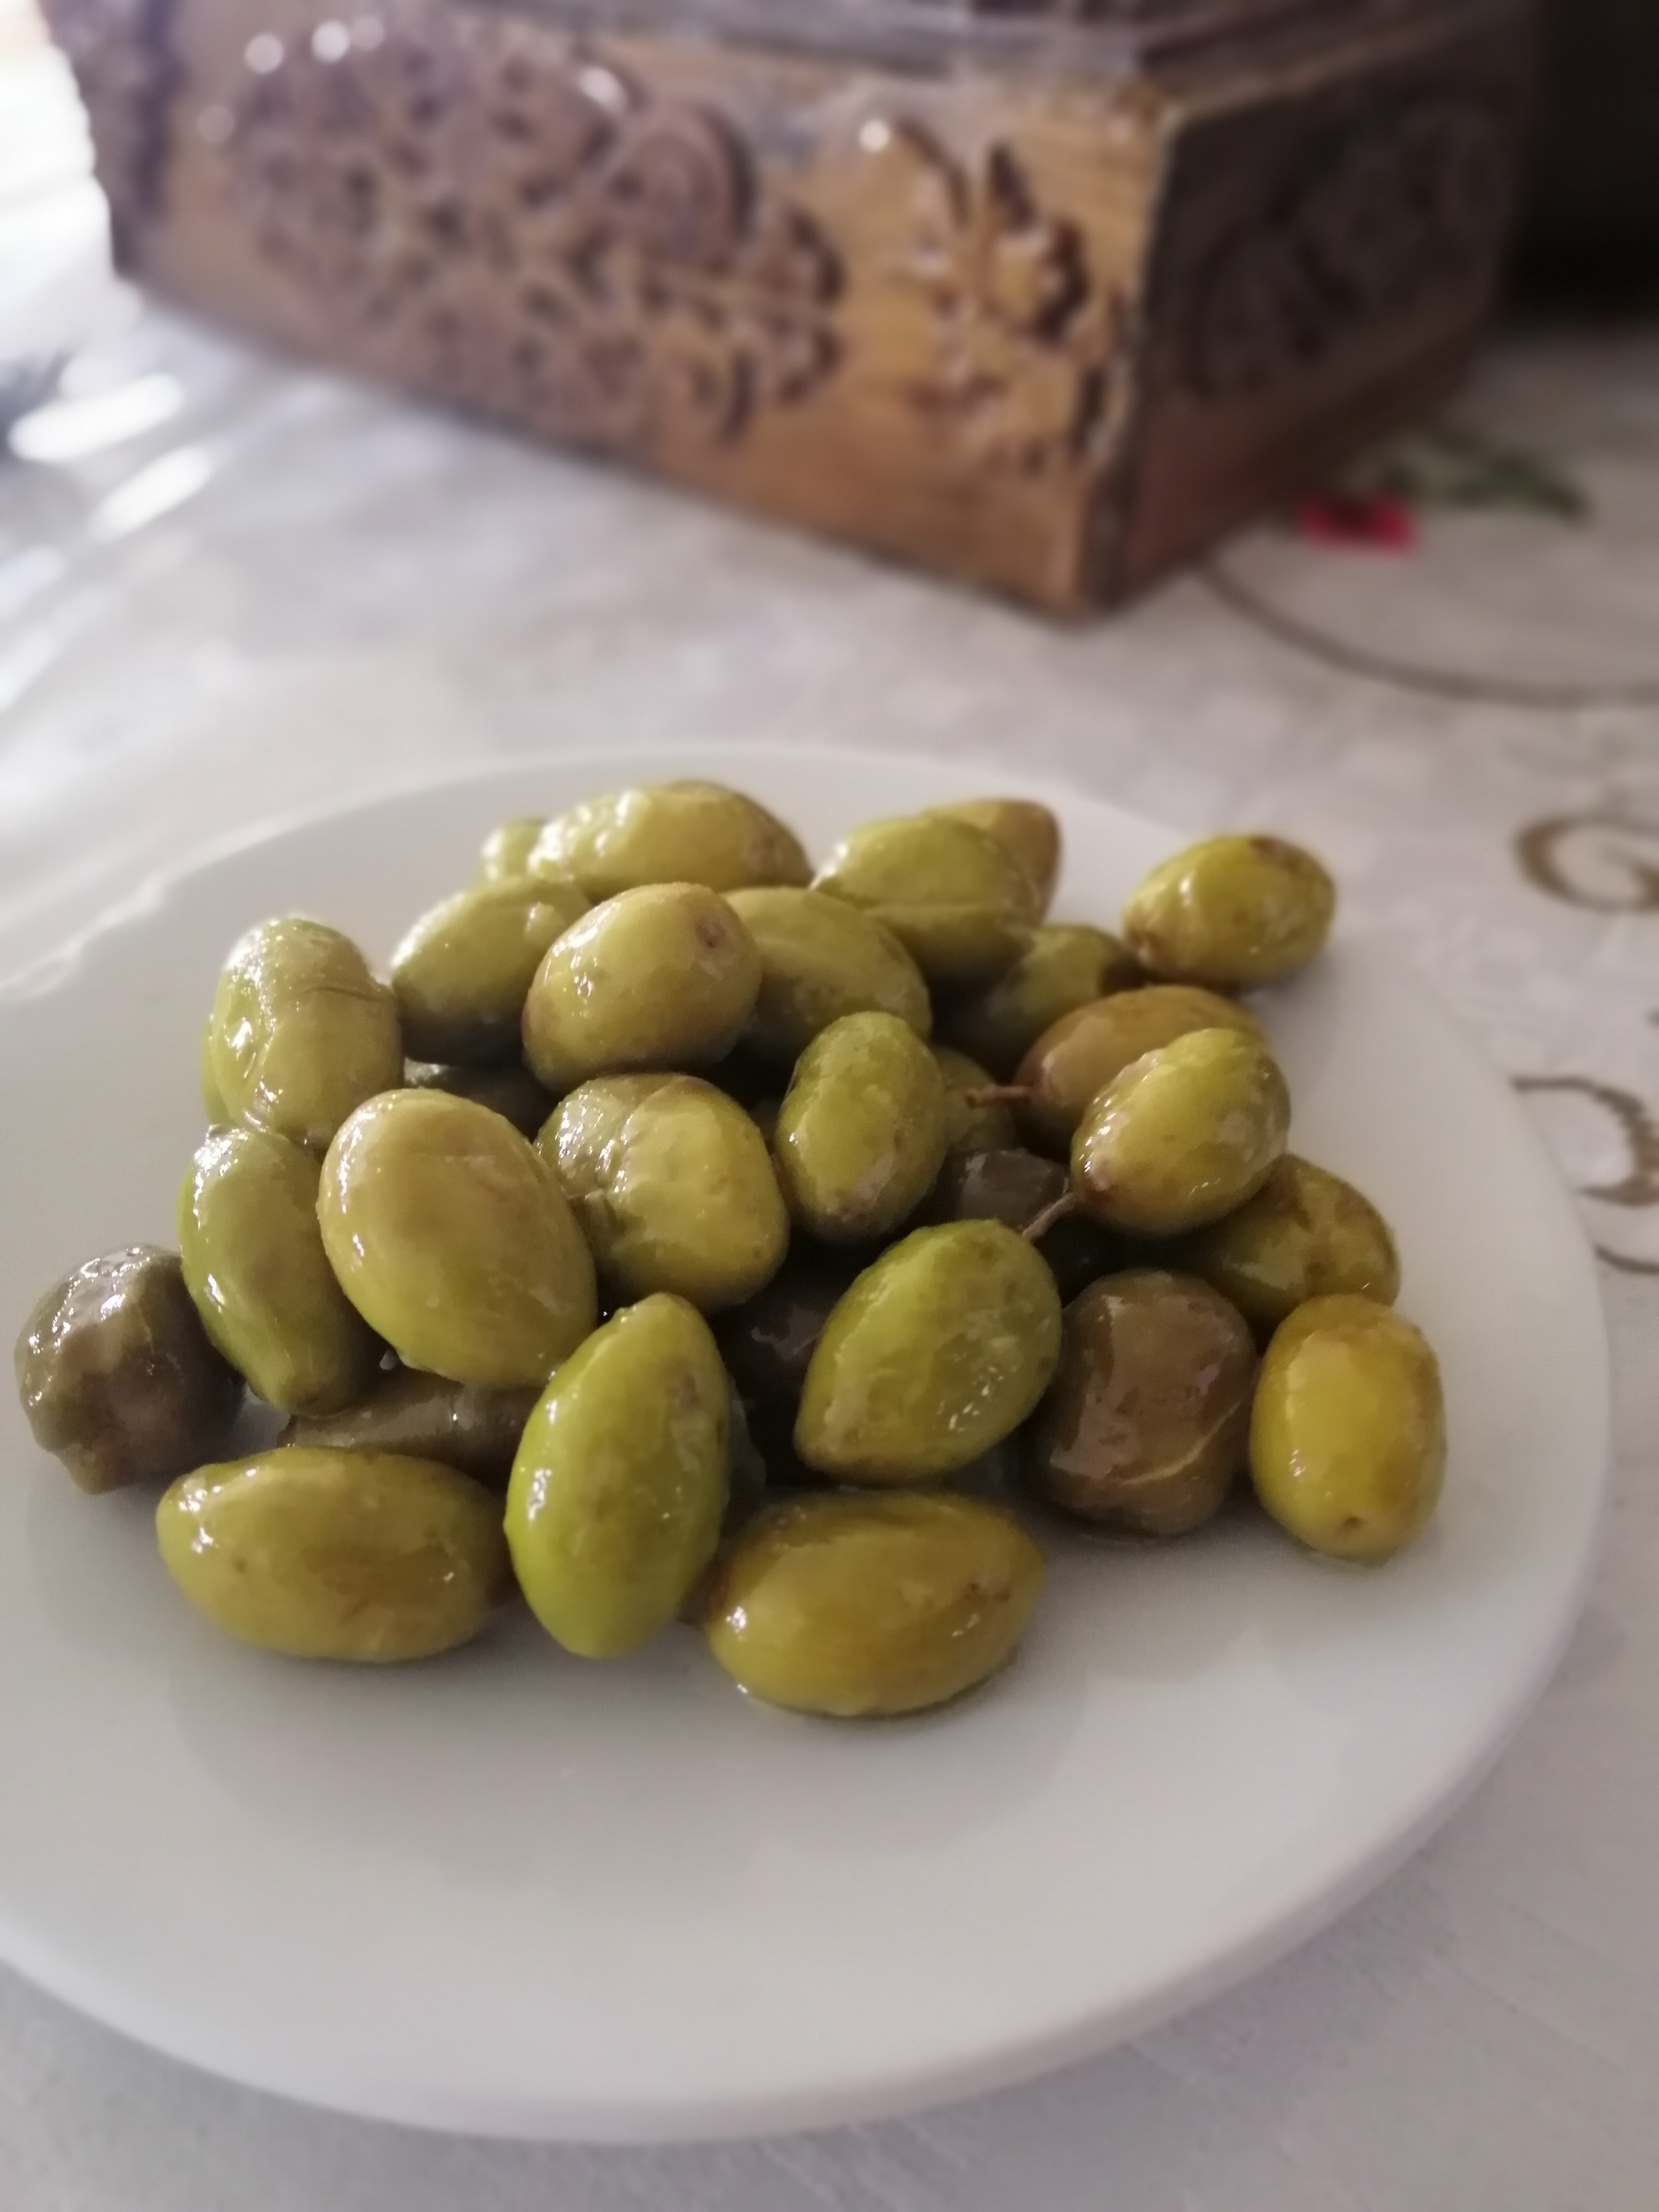 Home made olives by granny